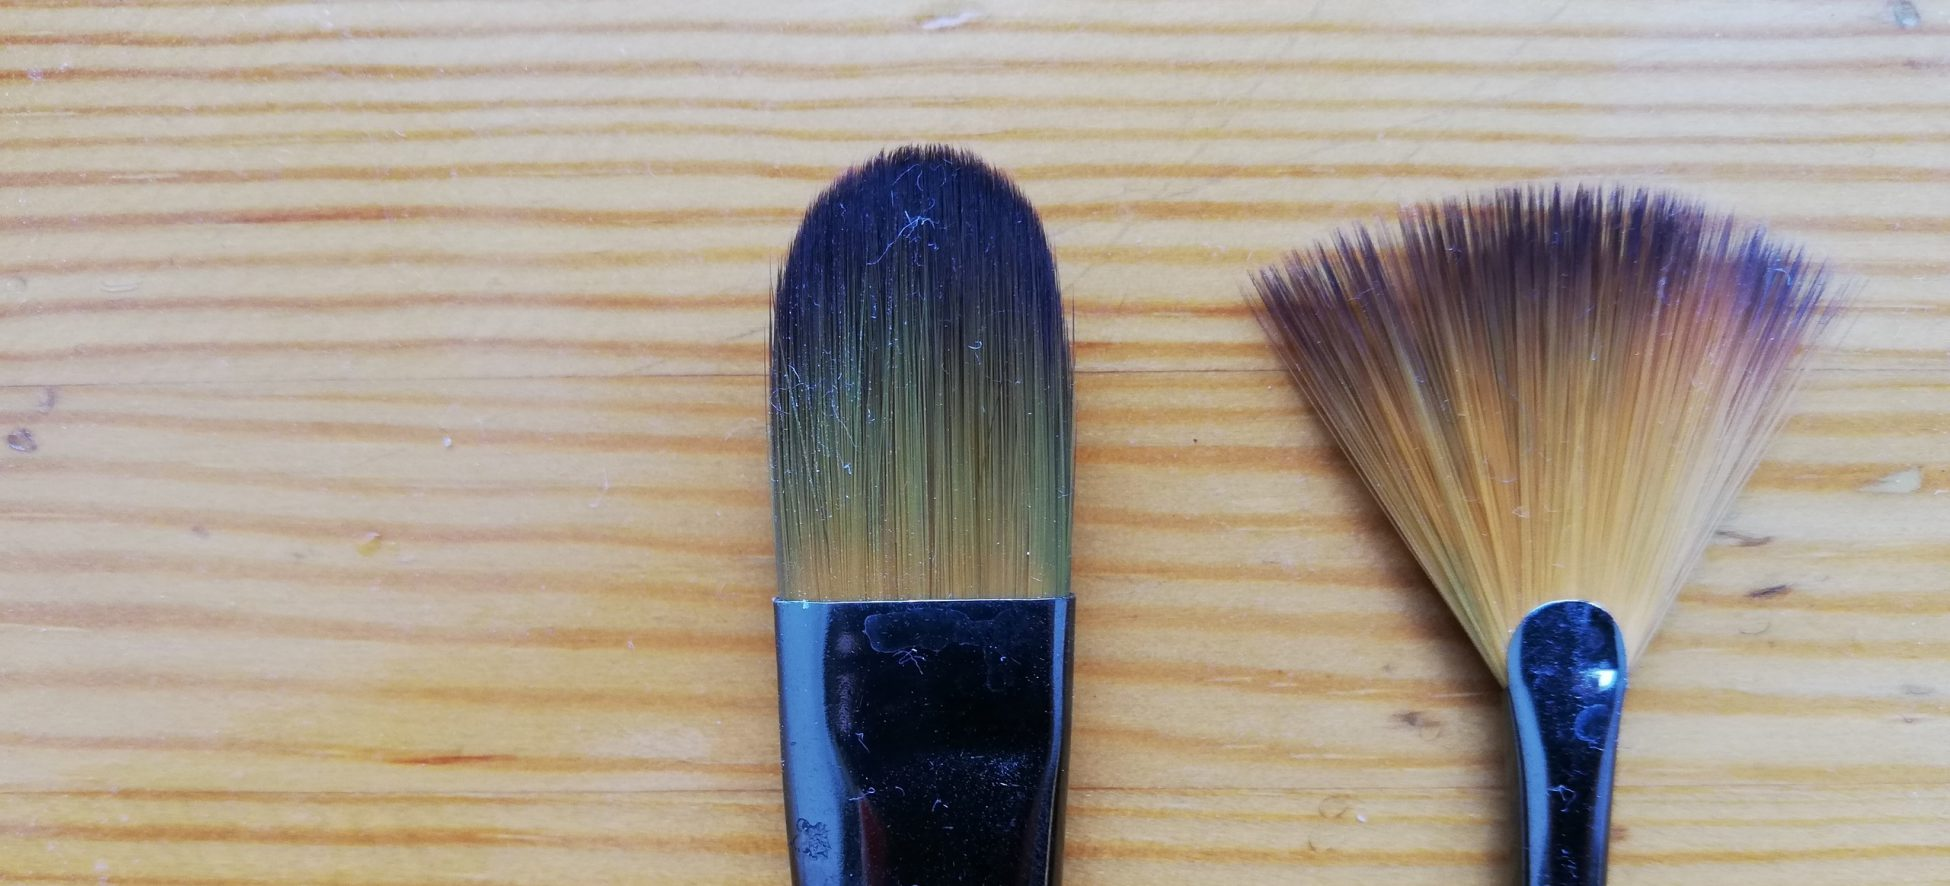 Synthetic Paintbrushes: Whether You Should Buy Them or Not?